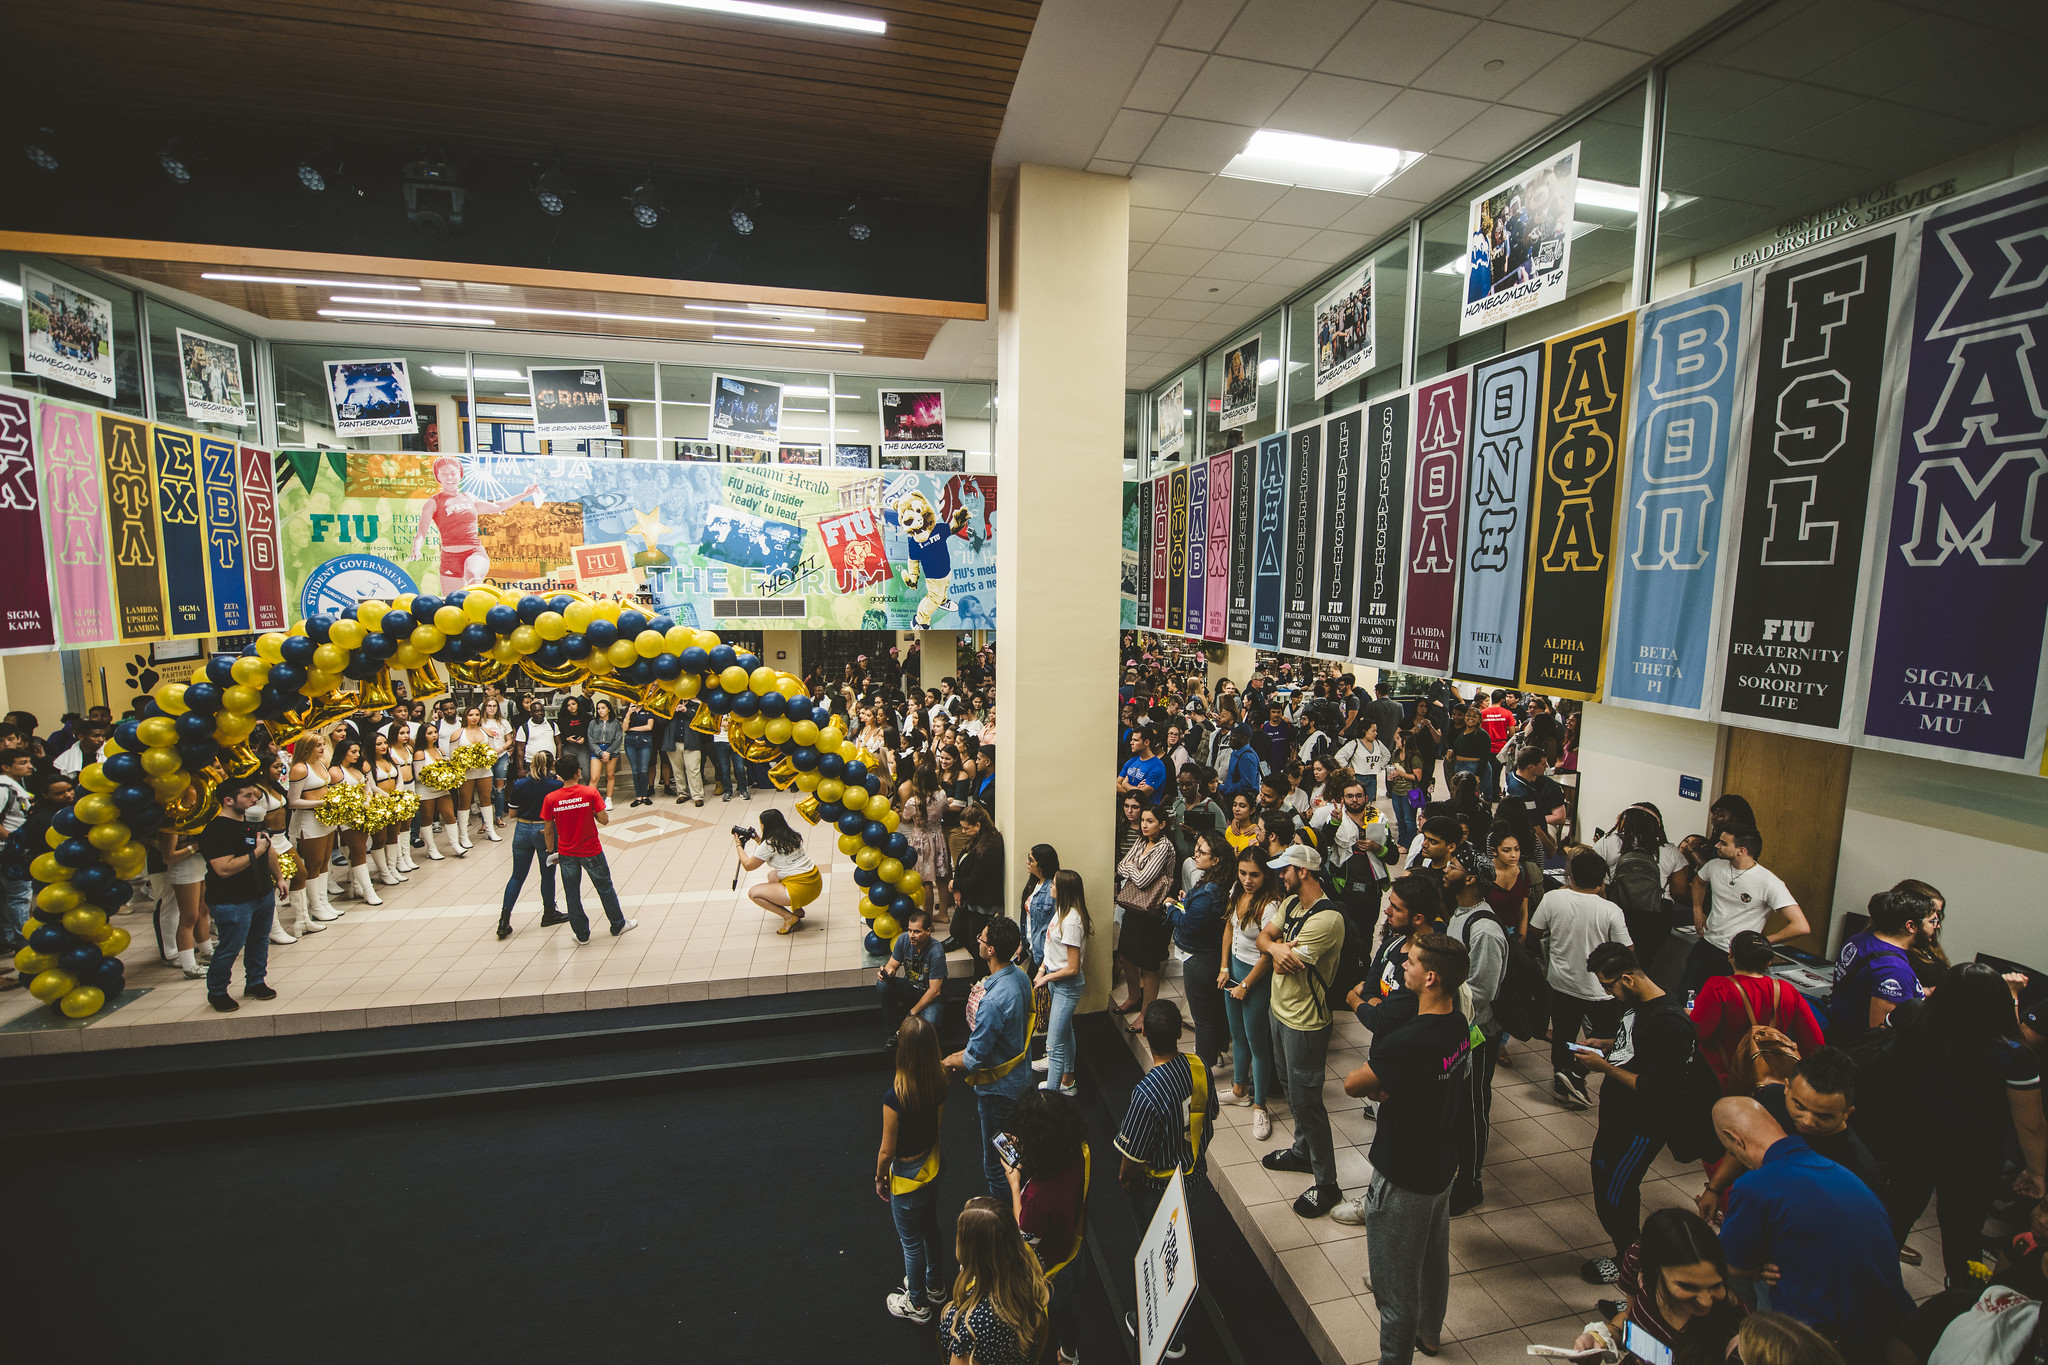 Students Celebrate One Of FIU's Oldest Traditions - PantherNOW